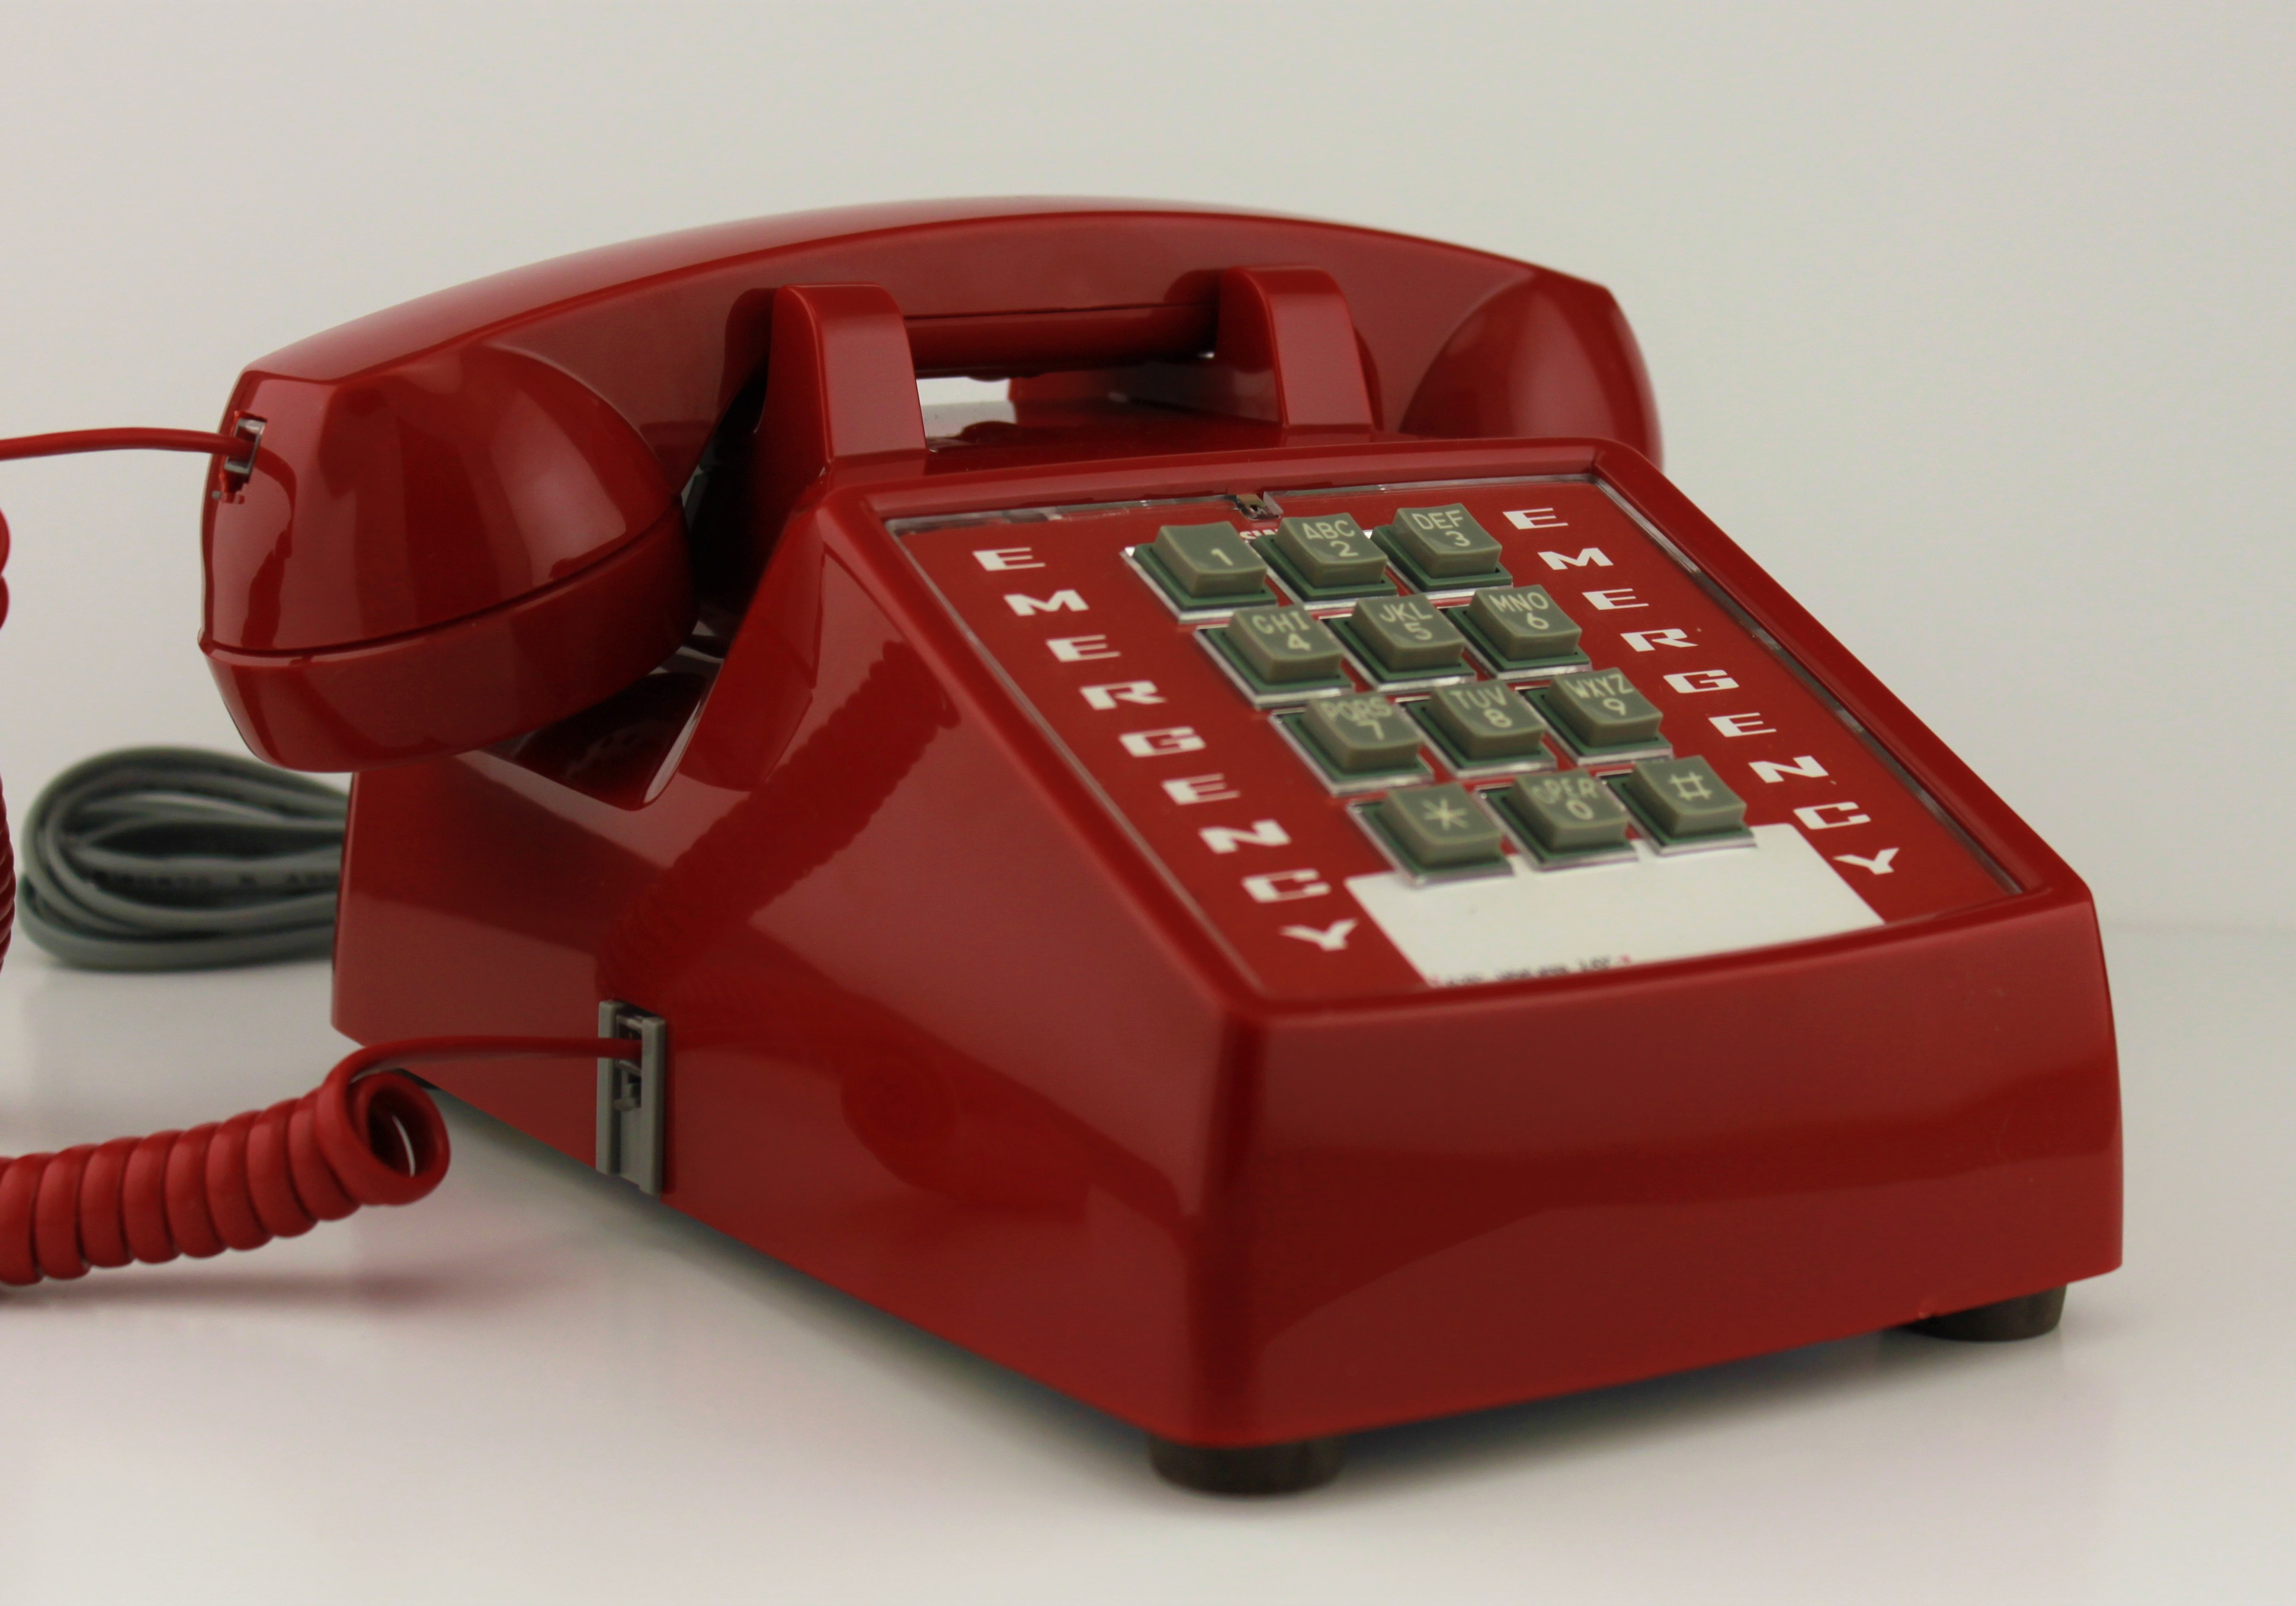 2500 Emergency Desk Phone